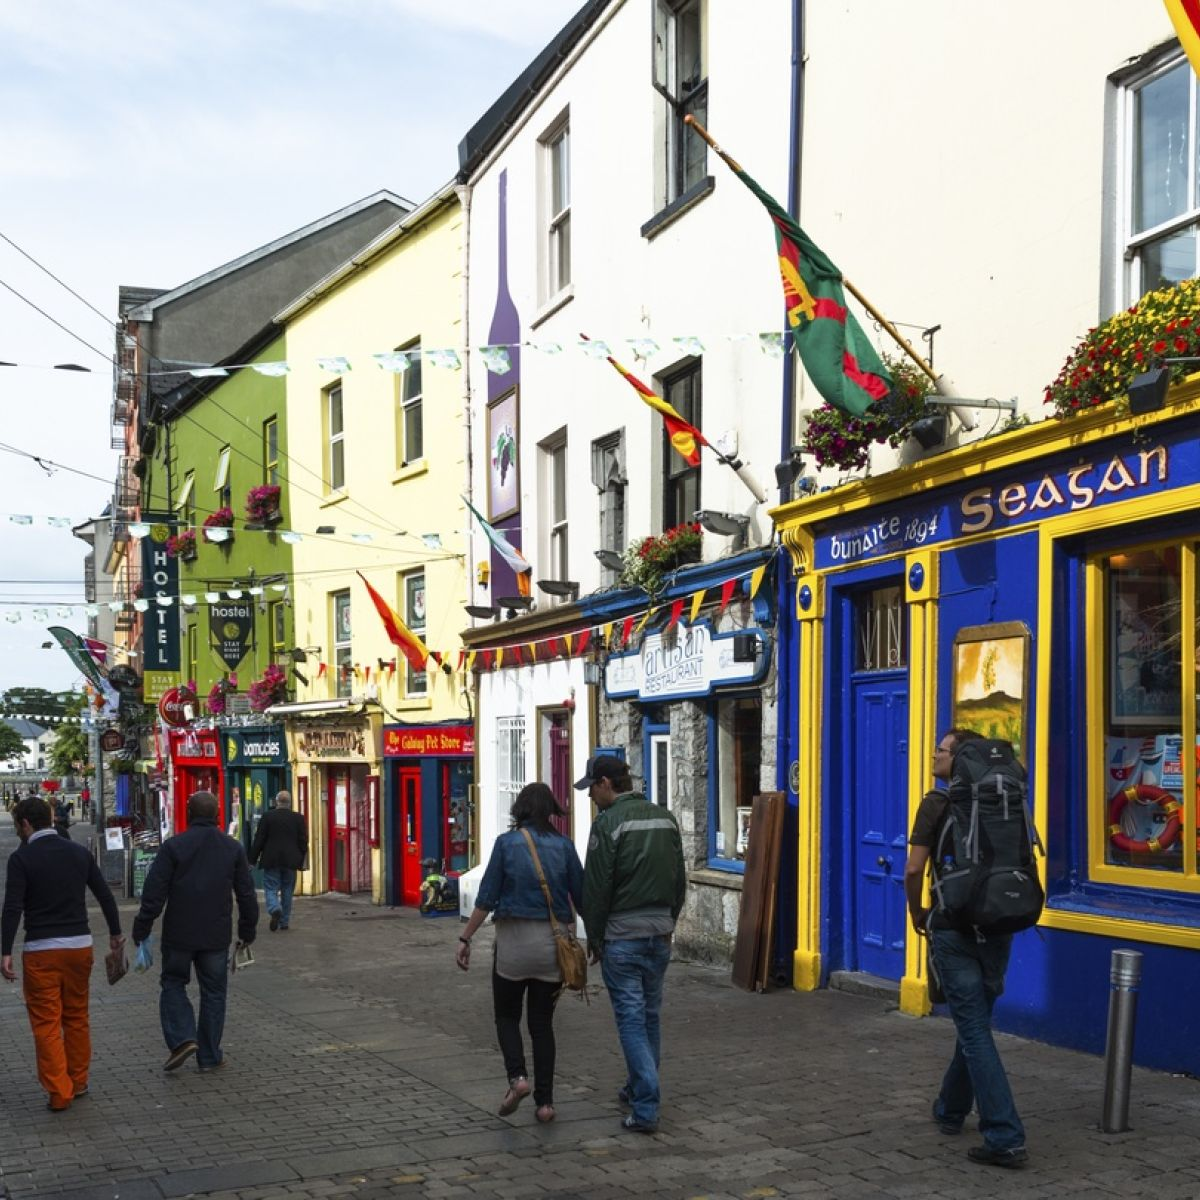 13 OF GALWAYS BEST SPORTS BARS - This is Galway